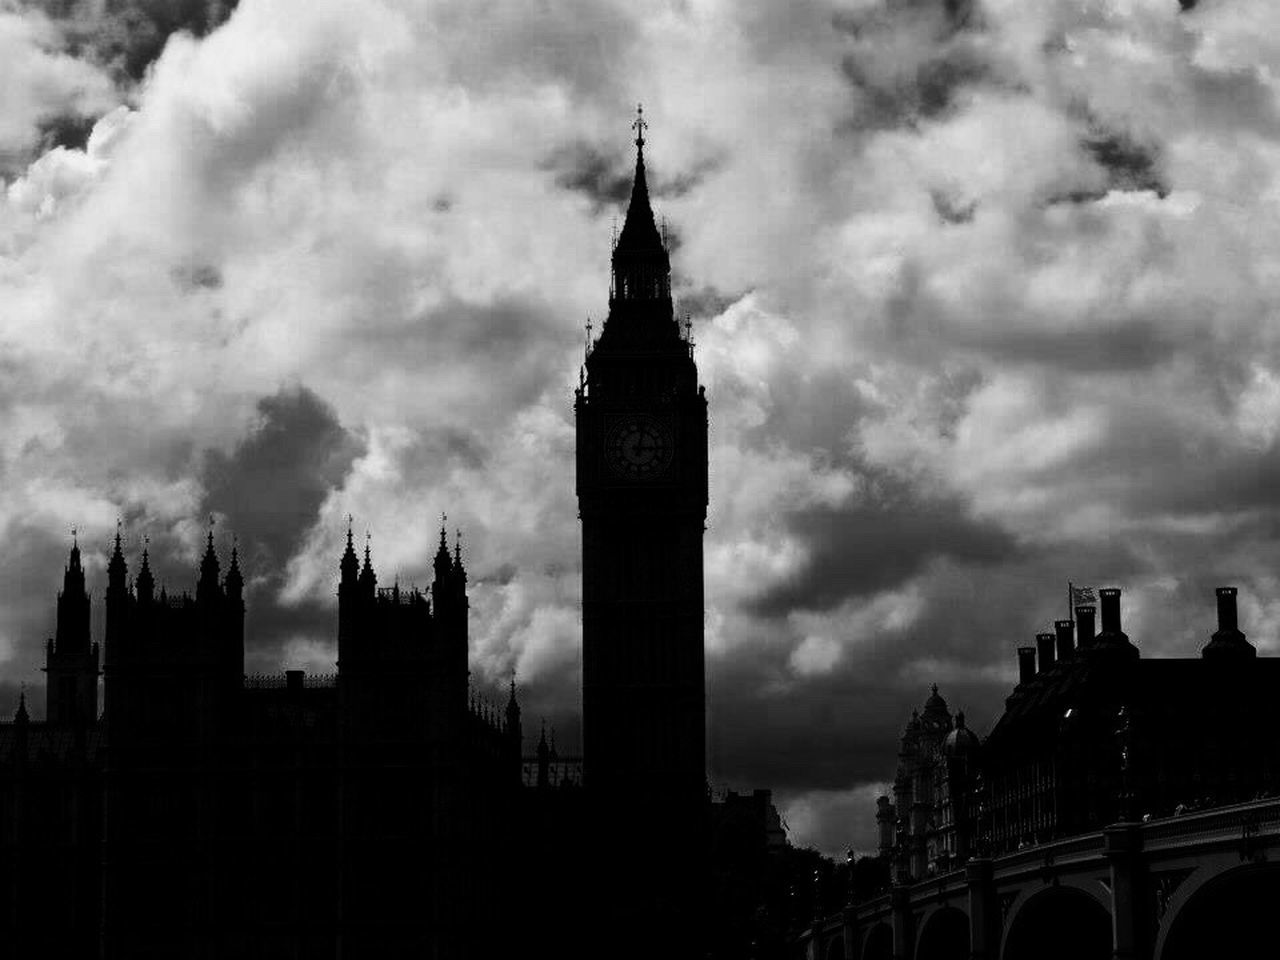 Big Ben Westminster Central London London London Lifestyle LONDON❤ London Eye Travel Travel Destinations Traveling Blackandwhite Black And White Clouds And Sky Portrait Clock Tower Cloud - Sky Sky Architecture Built Structure Building Exterior Clock Tower Outdoors City Cultures